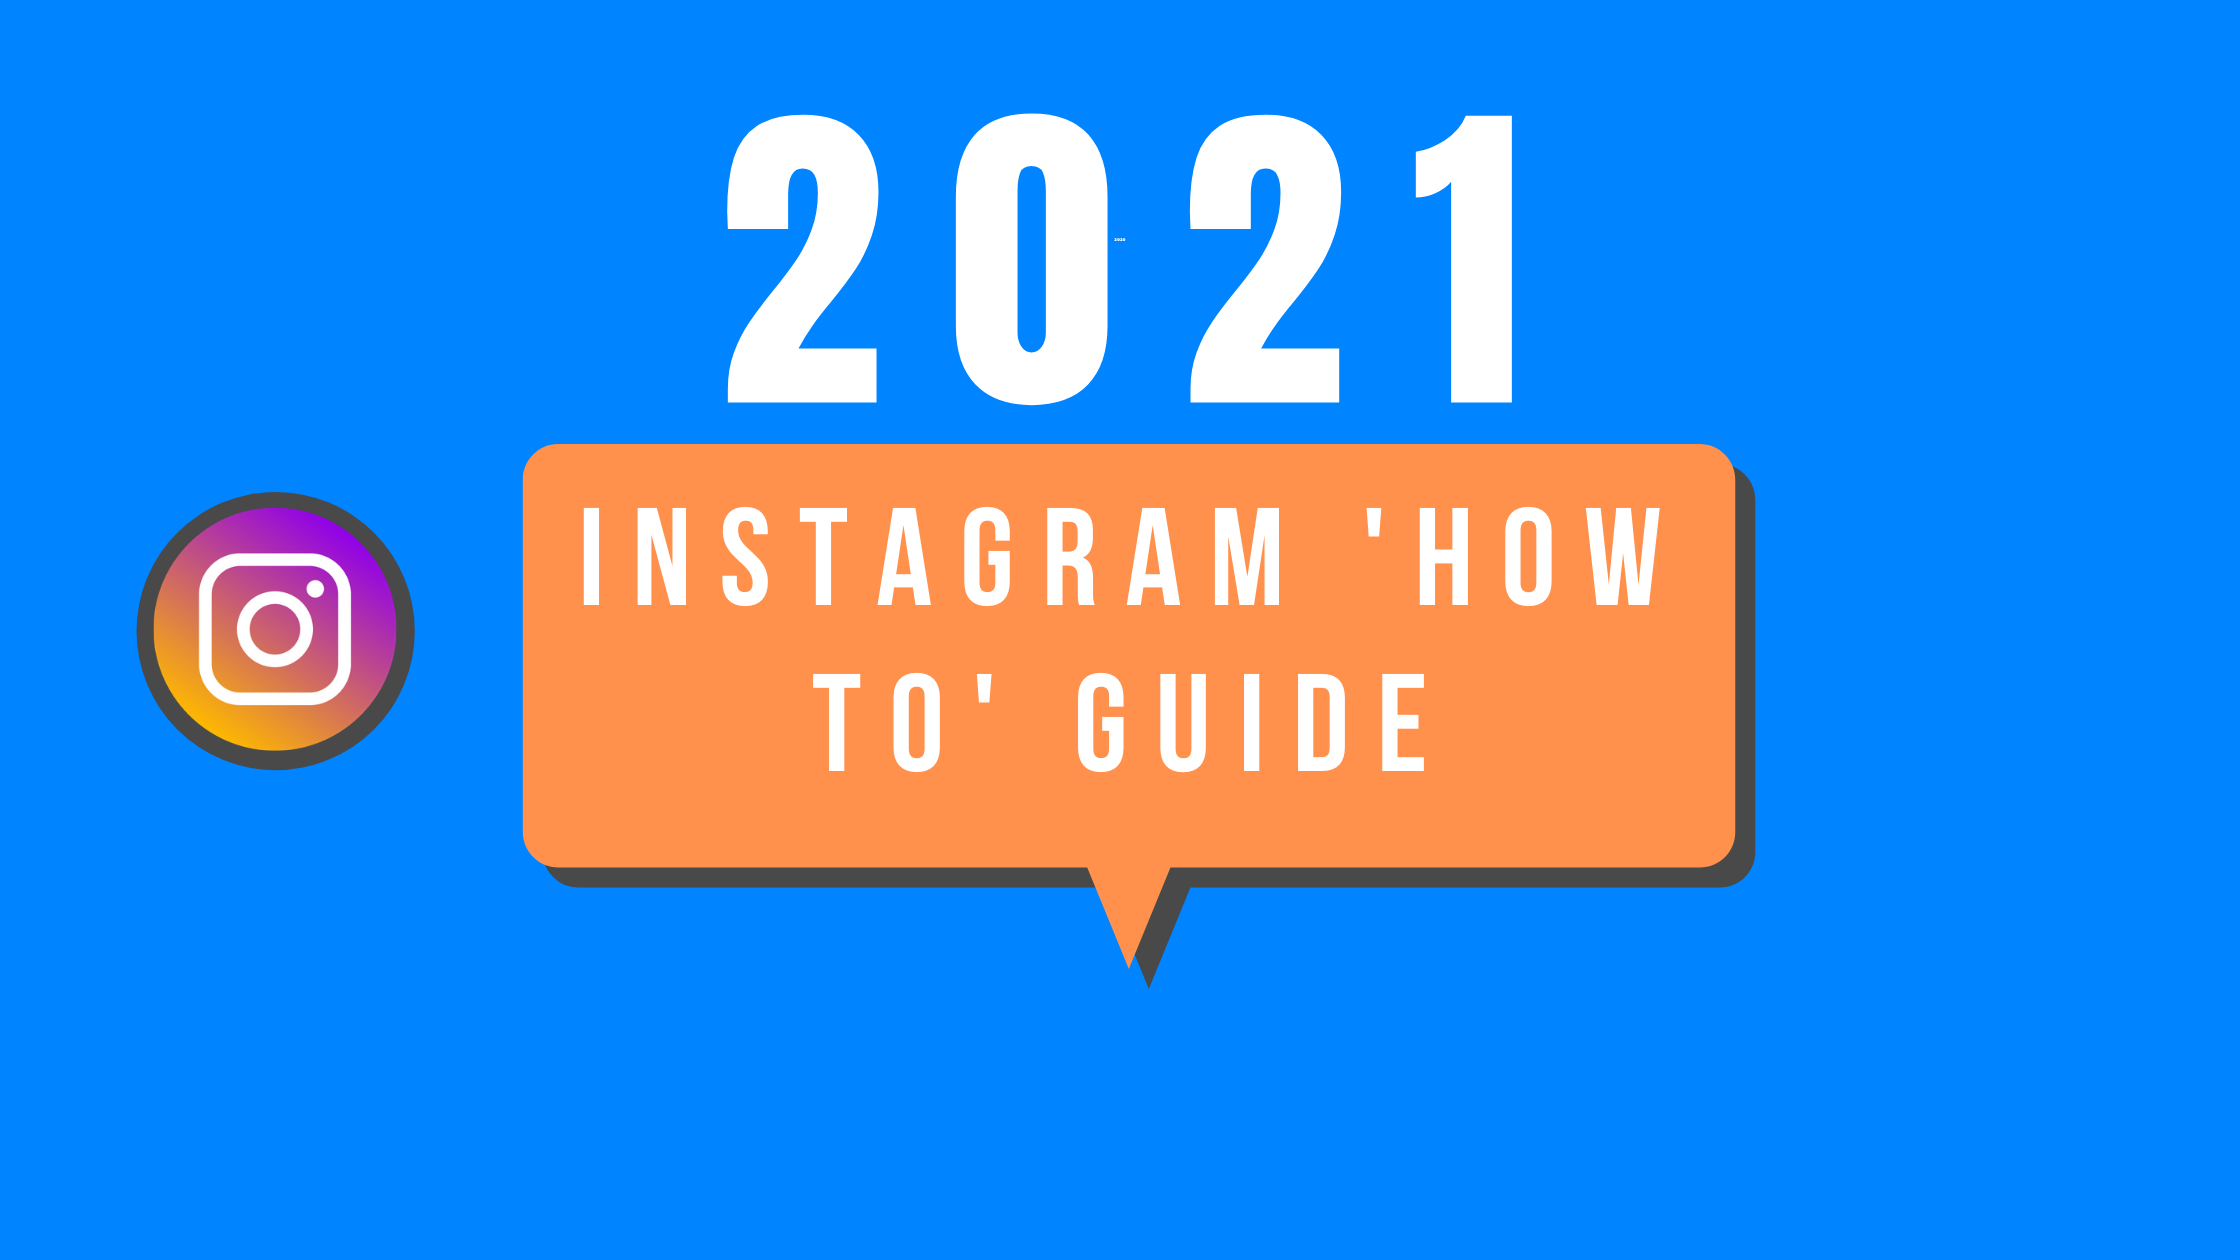 How to use instagram 2021 guide